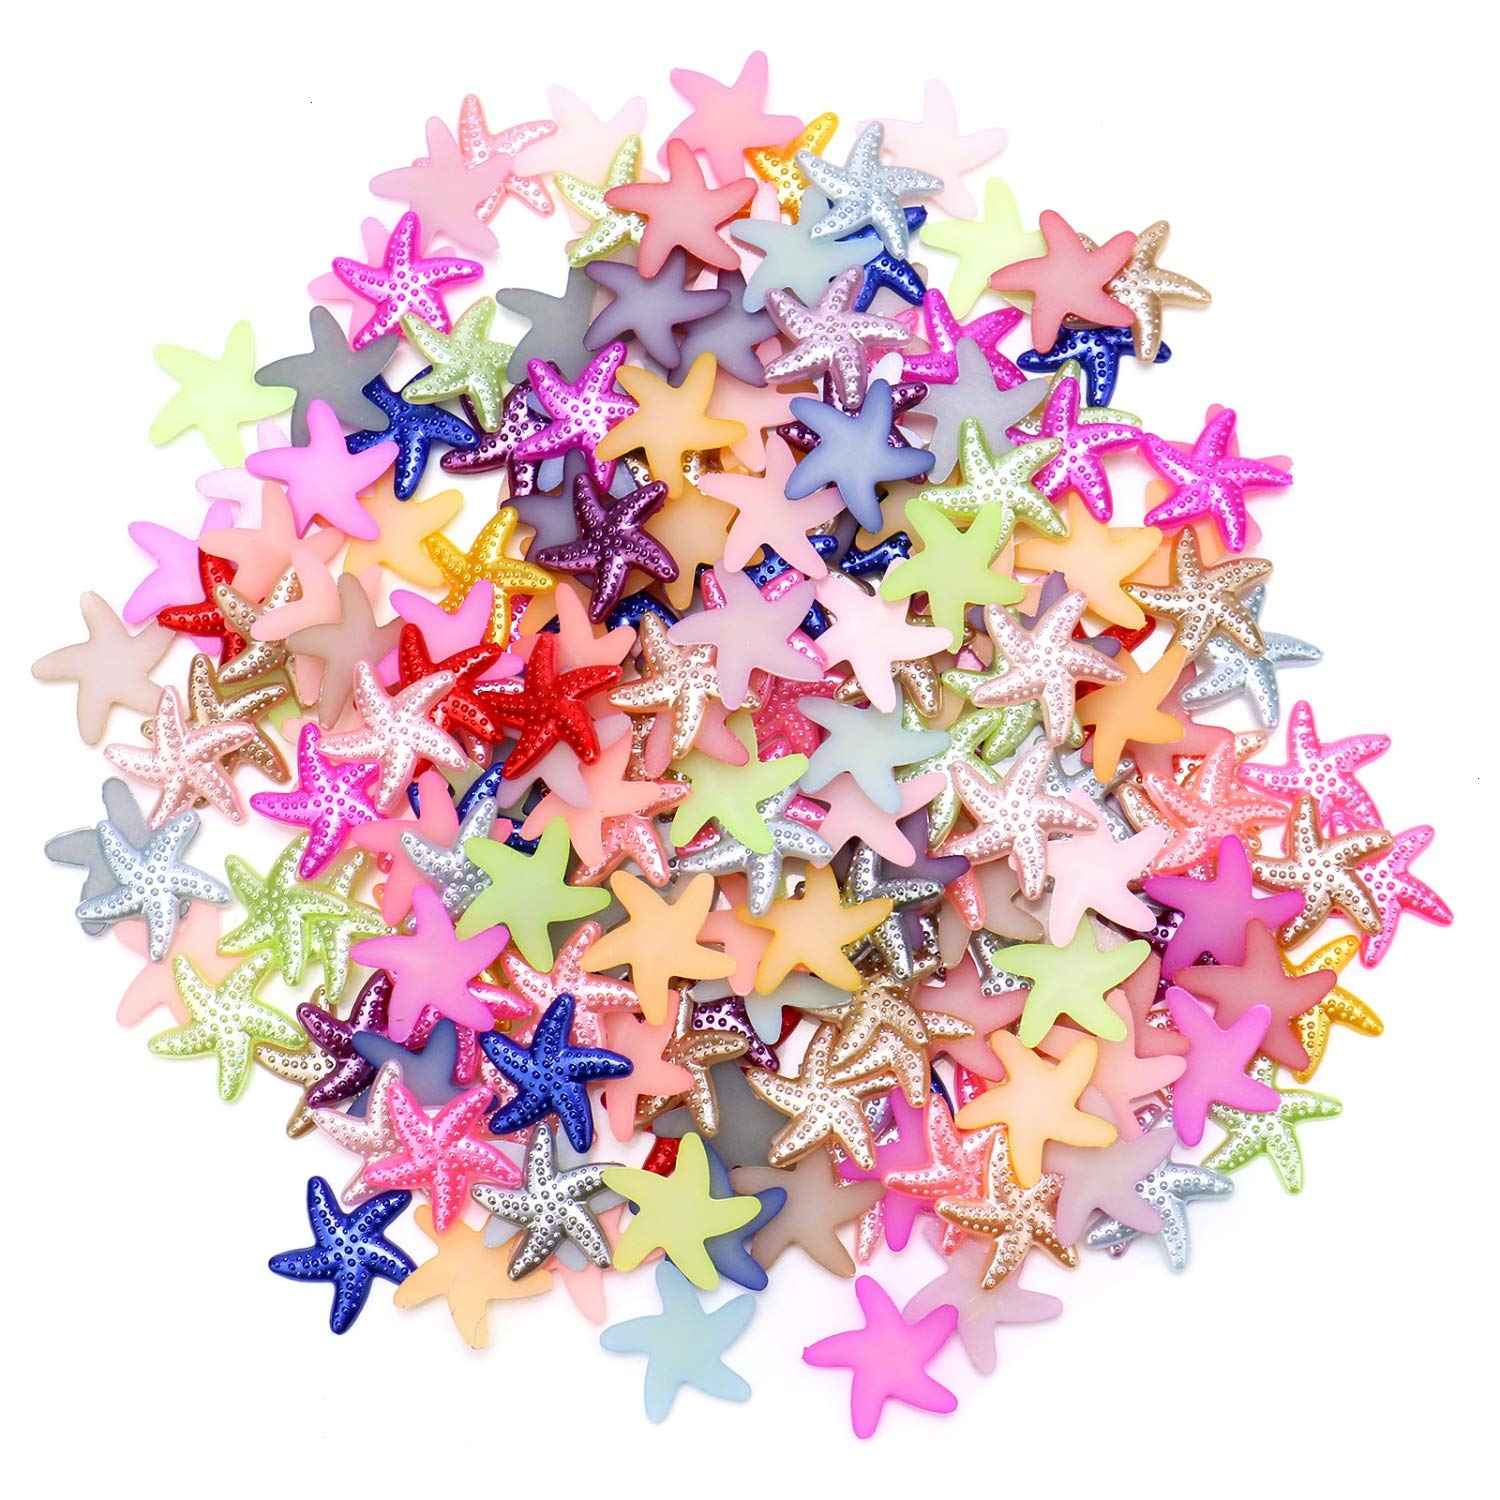 JETEHO Mixed Color 400PCS Craft ABS Starfish Resin Slime Beads Slime Resin Charms for Scrapbooking Phone Case Decor DIY